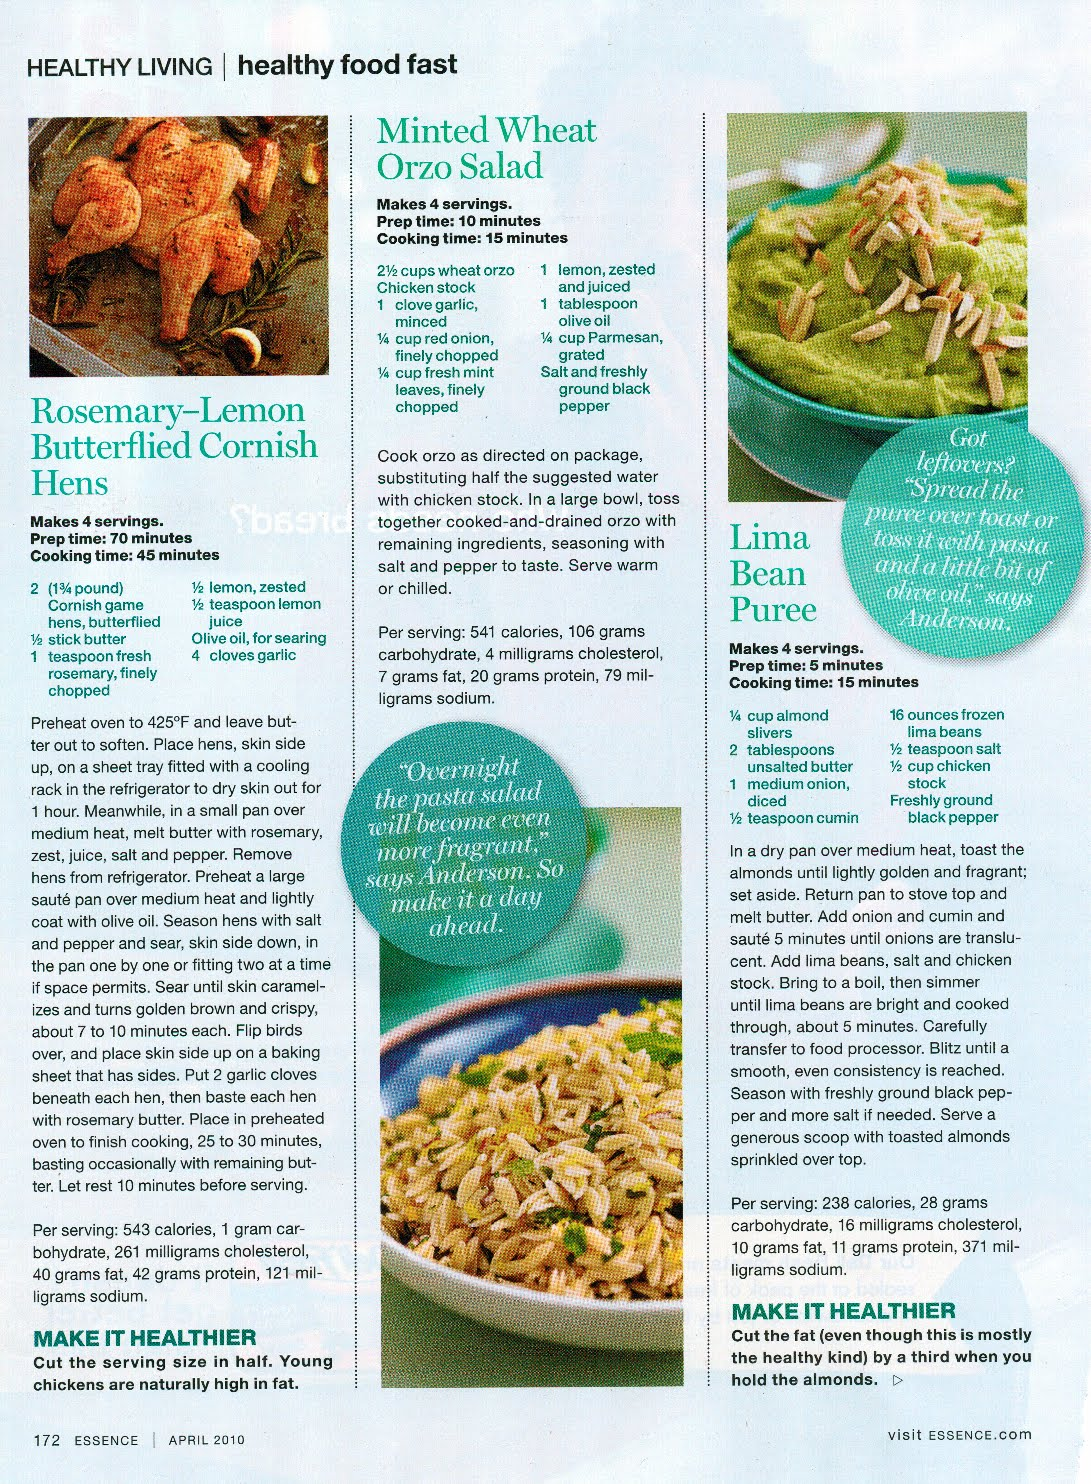 Sunny anderson warm and fuzzy spring tomorrow for Essence magazine recipes